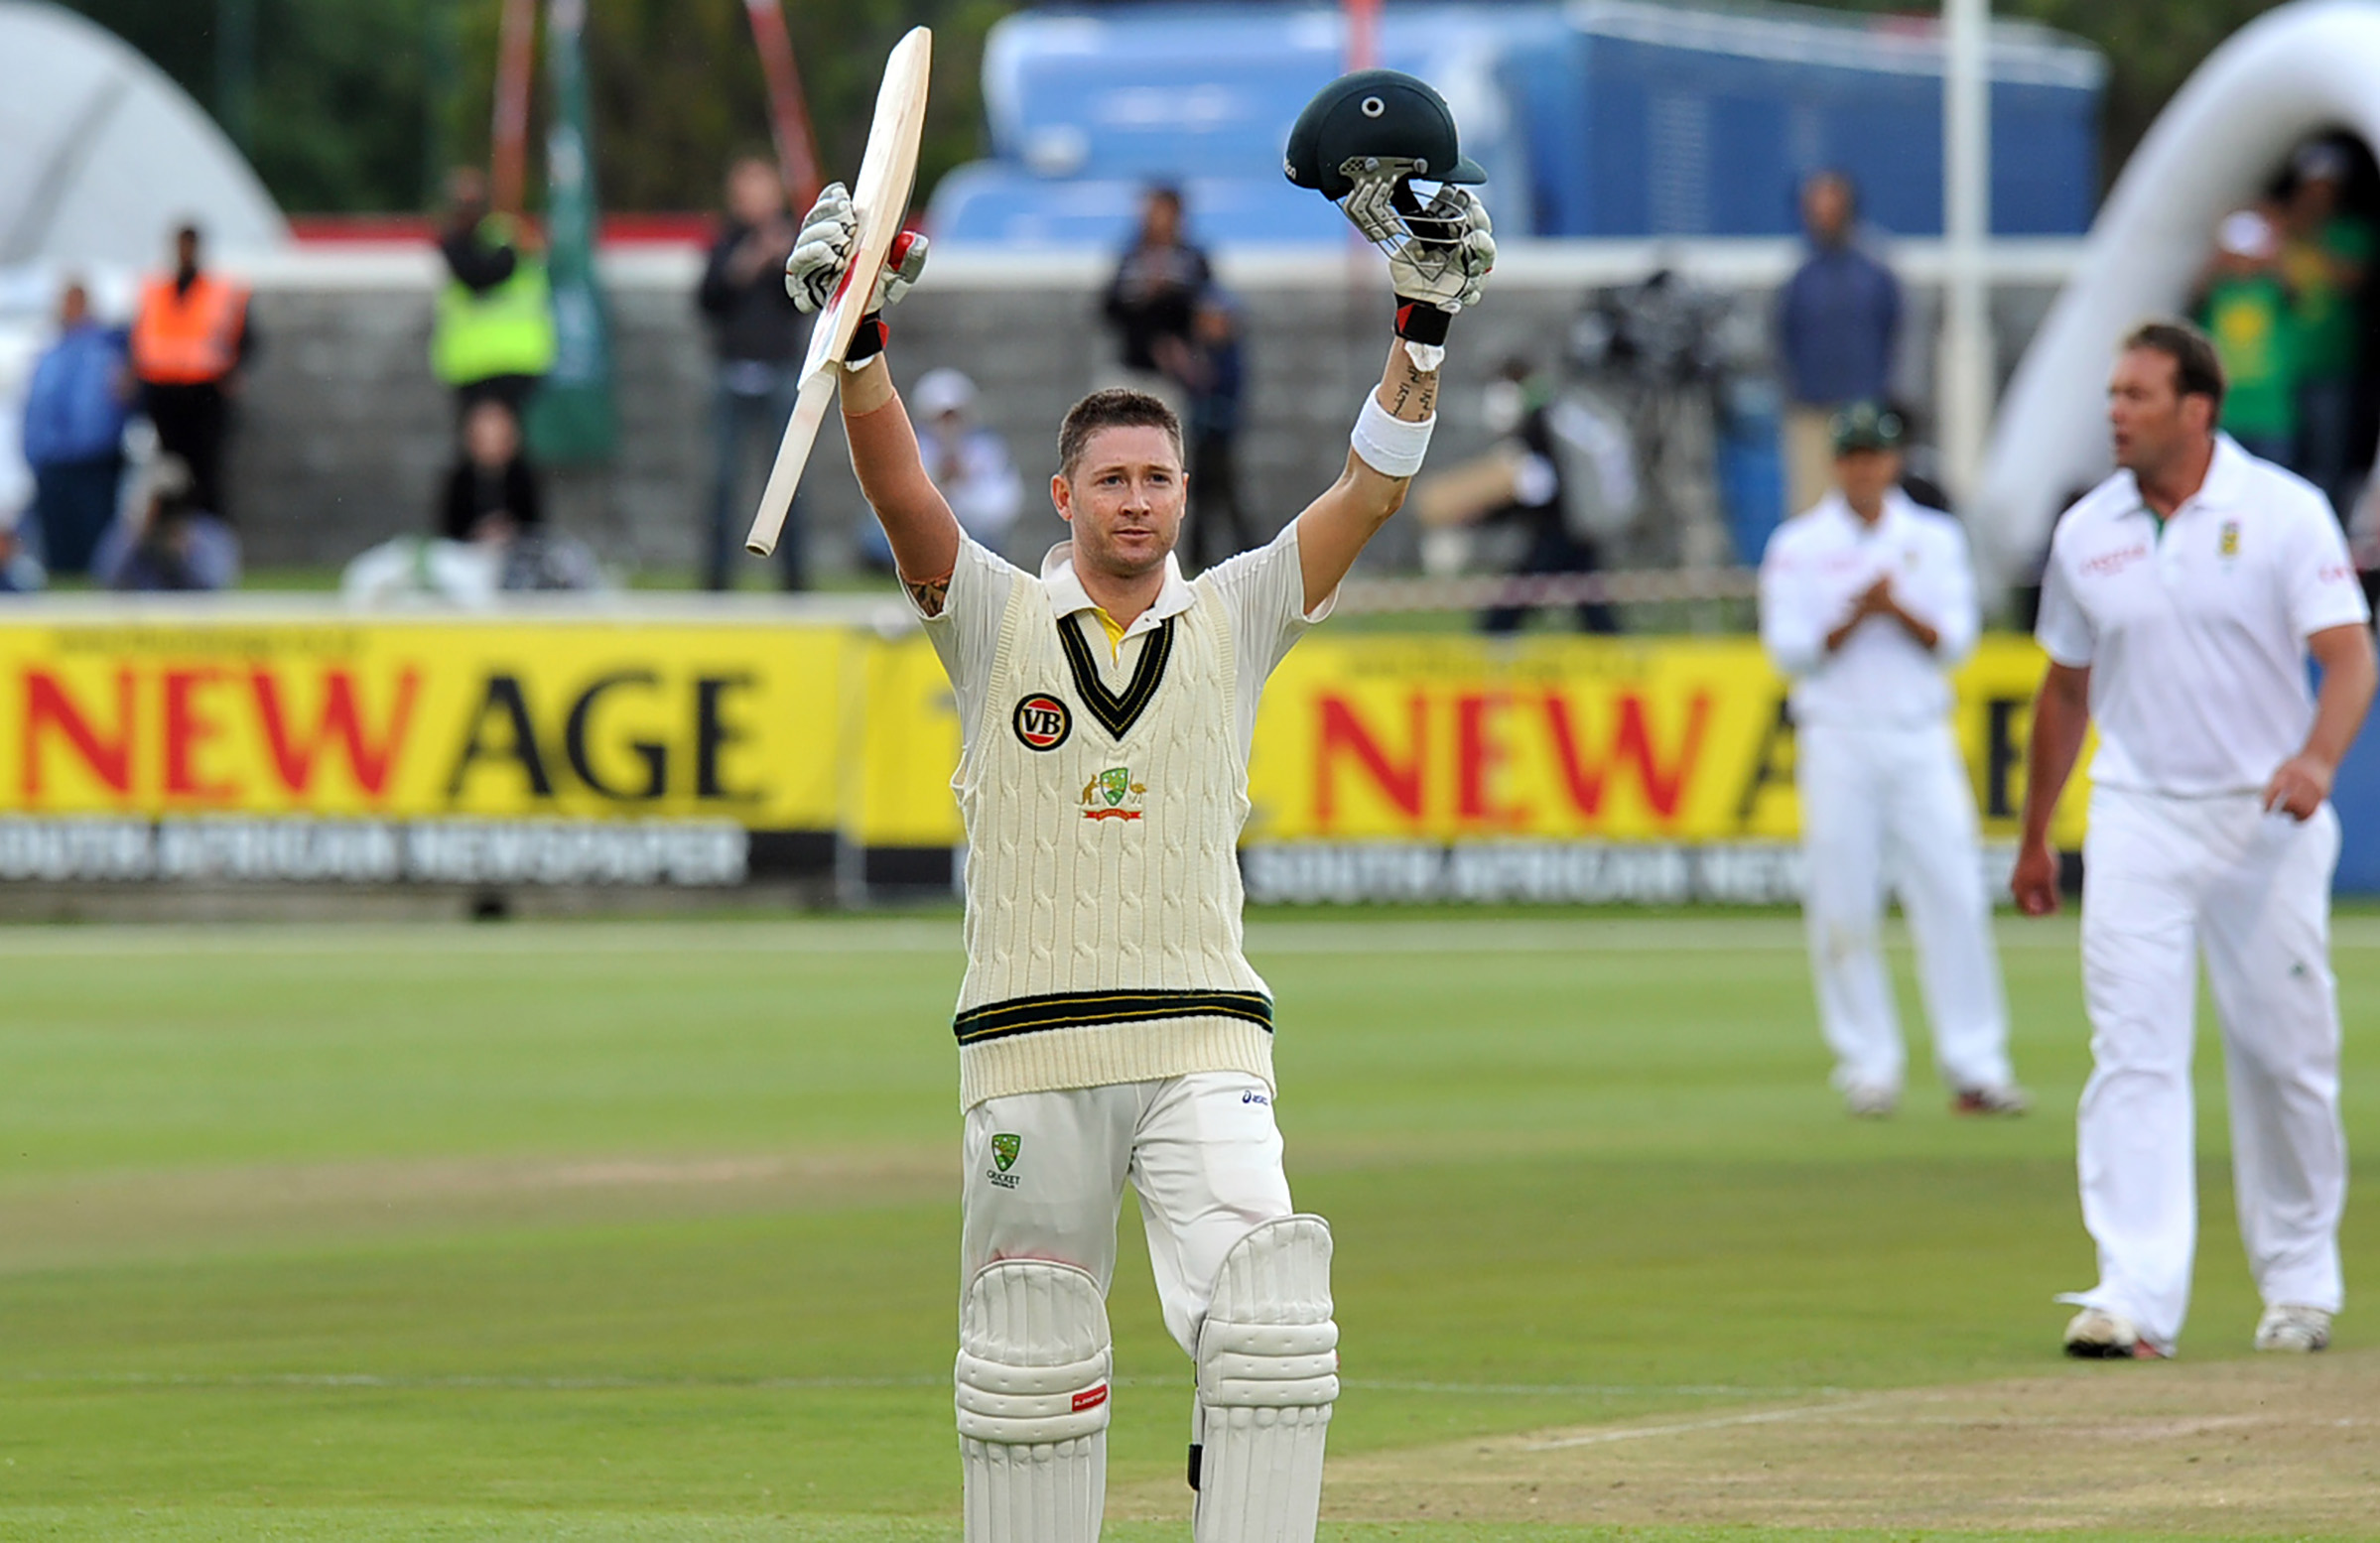 'One of the best hundreds I've seen' said Ricky Ponting of Clarke's 2011 Cape Town ton // Getty